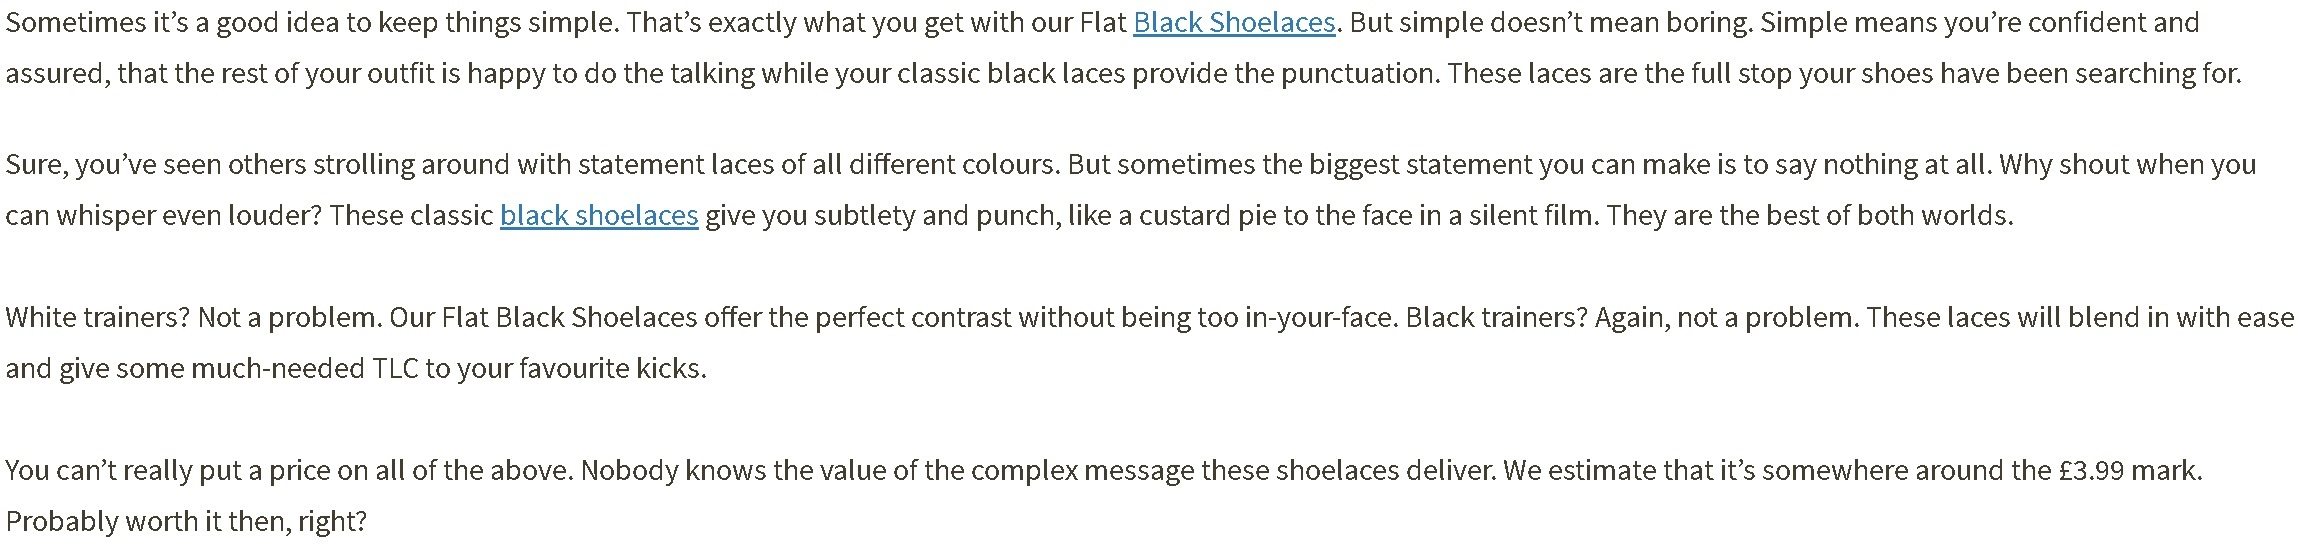 One of my descriptions for a pair of black shoelaces.